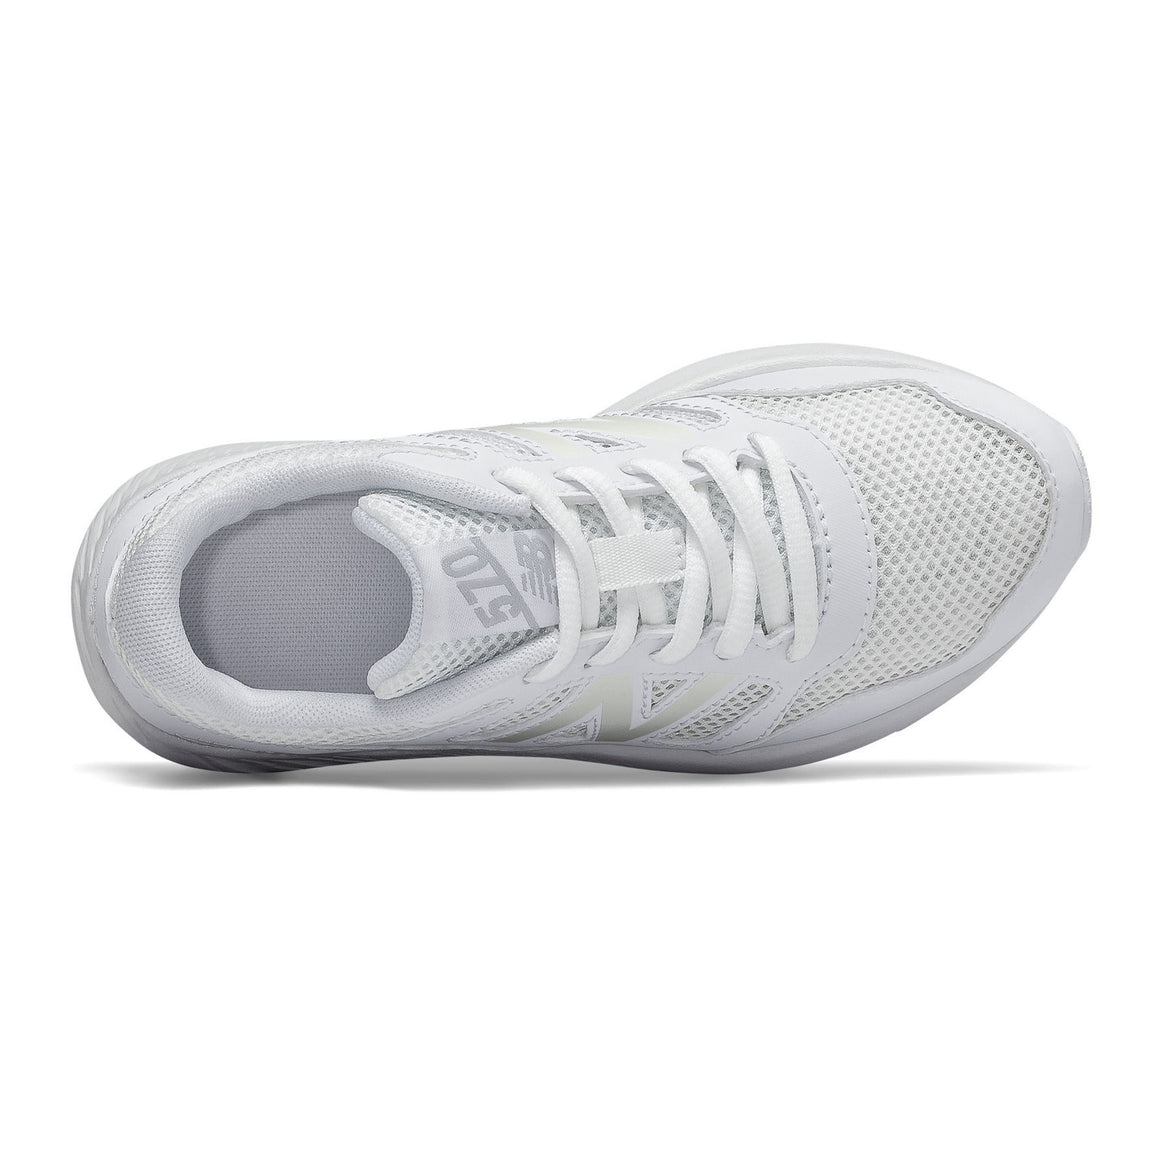 570 Running Shoes for Older Kids in White